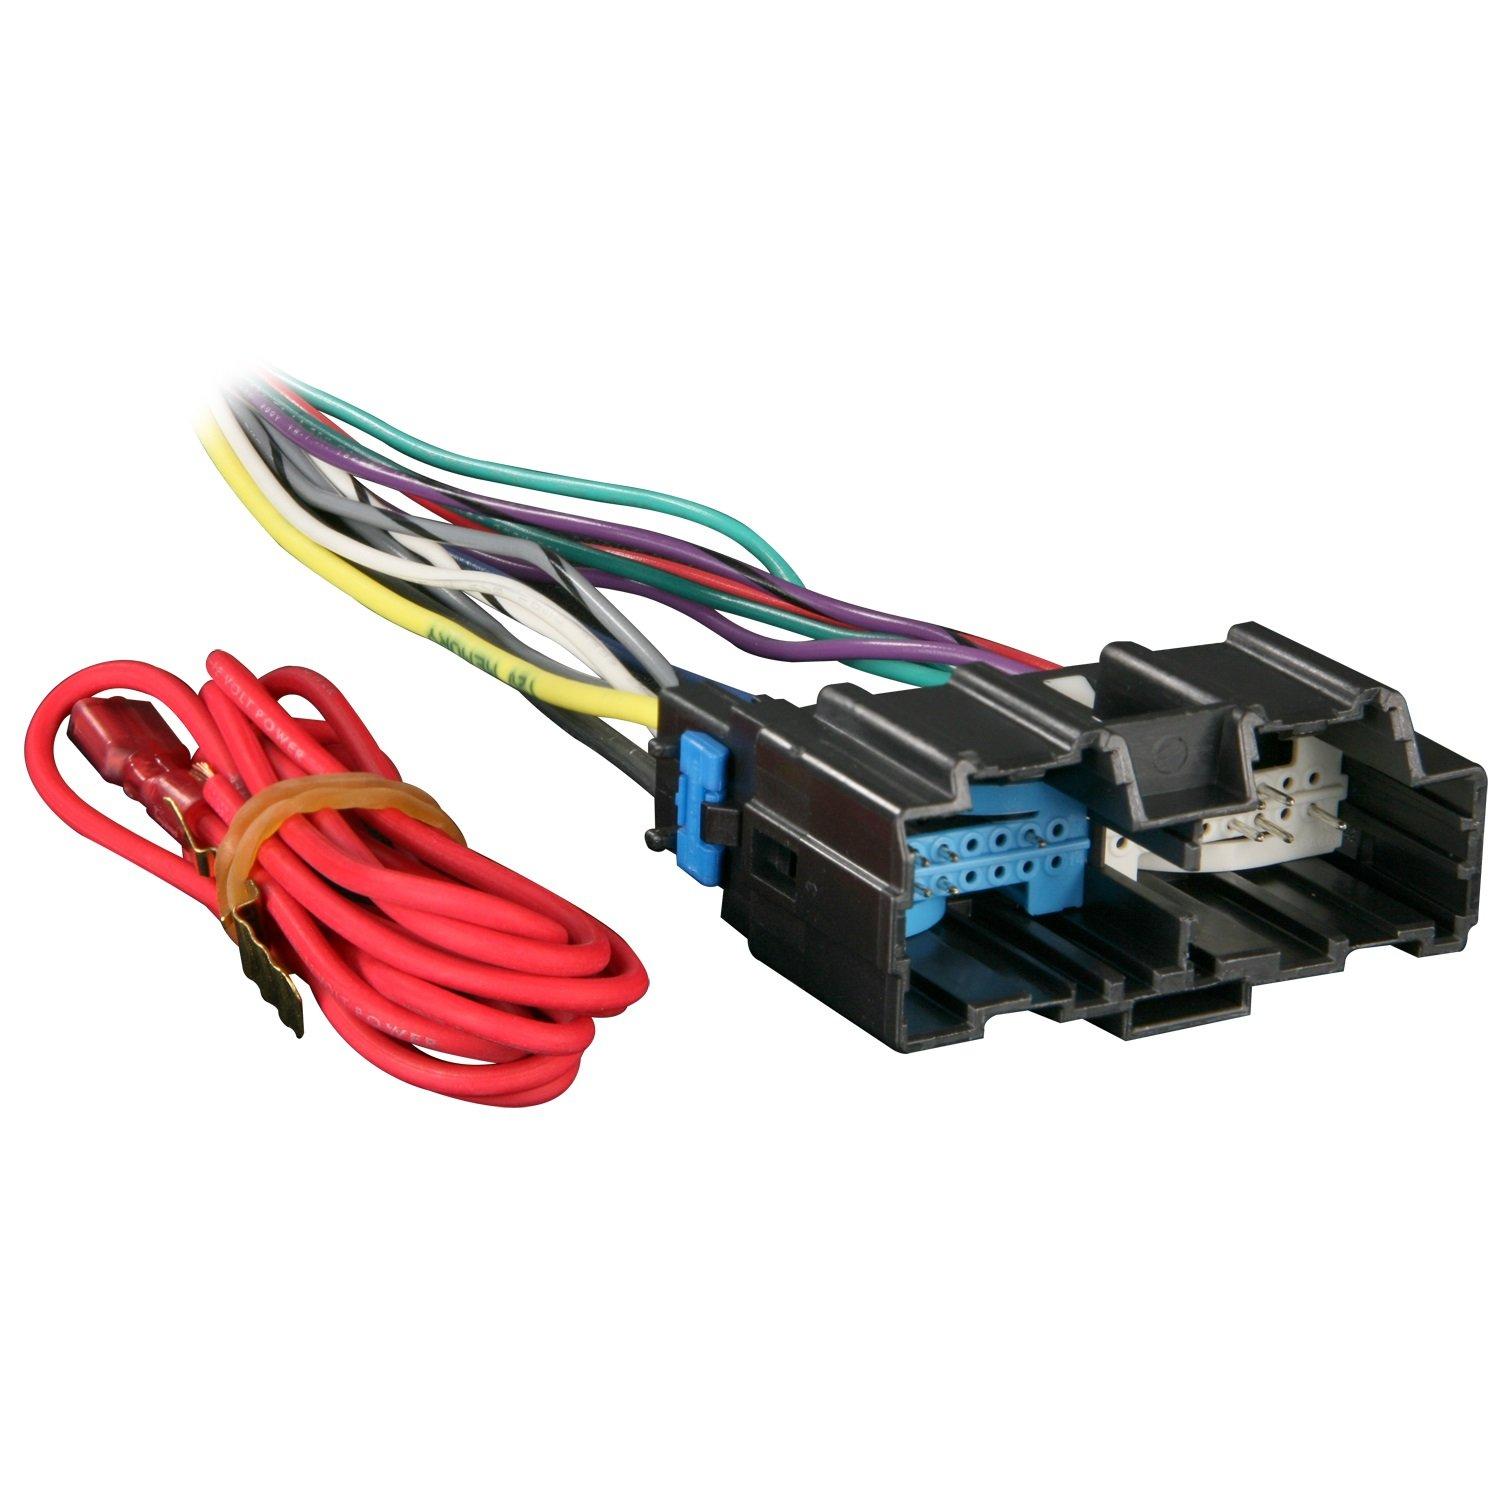 71ZzH dyg7L._SL1500_ amazon com metra 70 2105 radio wiring harness for impala monte  at panicattacktreatment.co